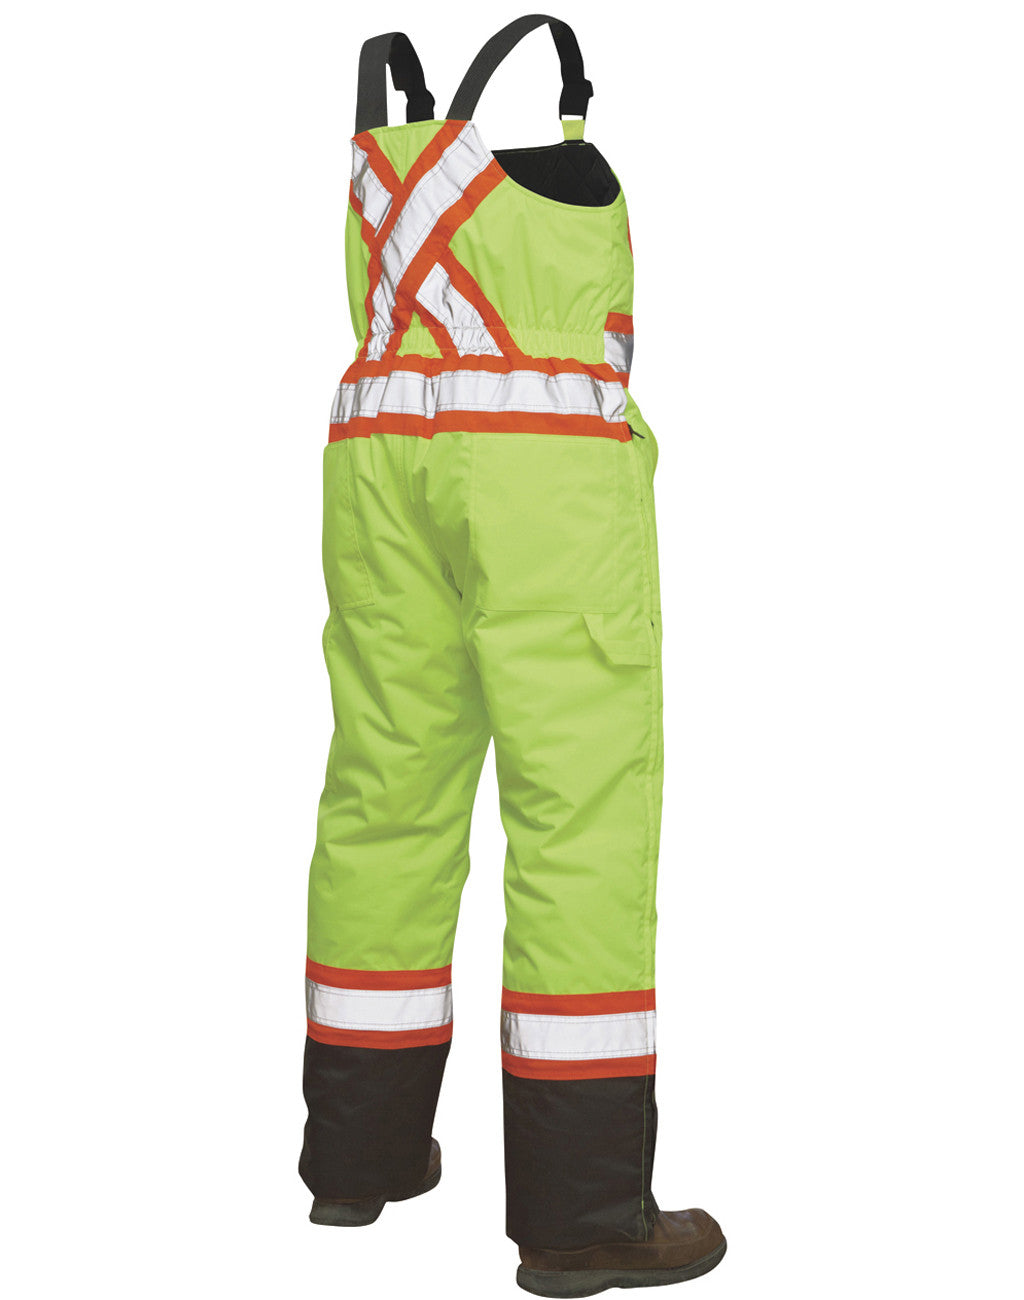 Men's Richlu Lined Insulated Bib Overall